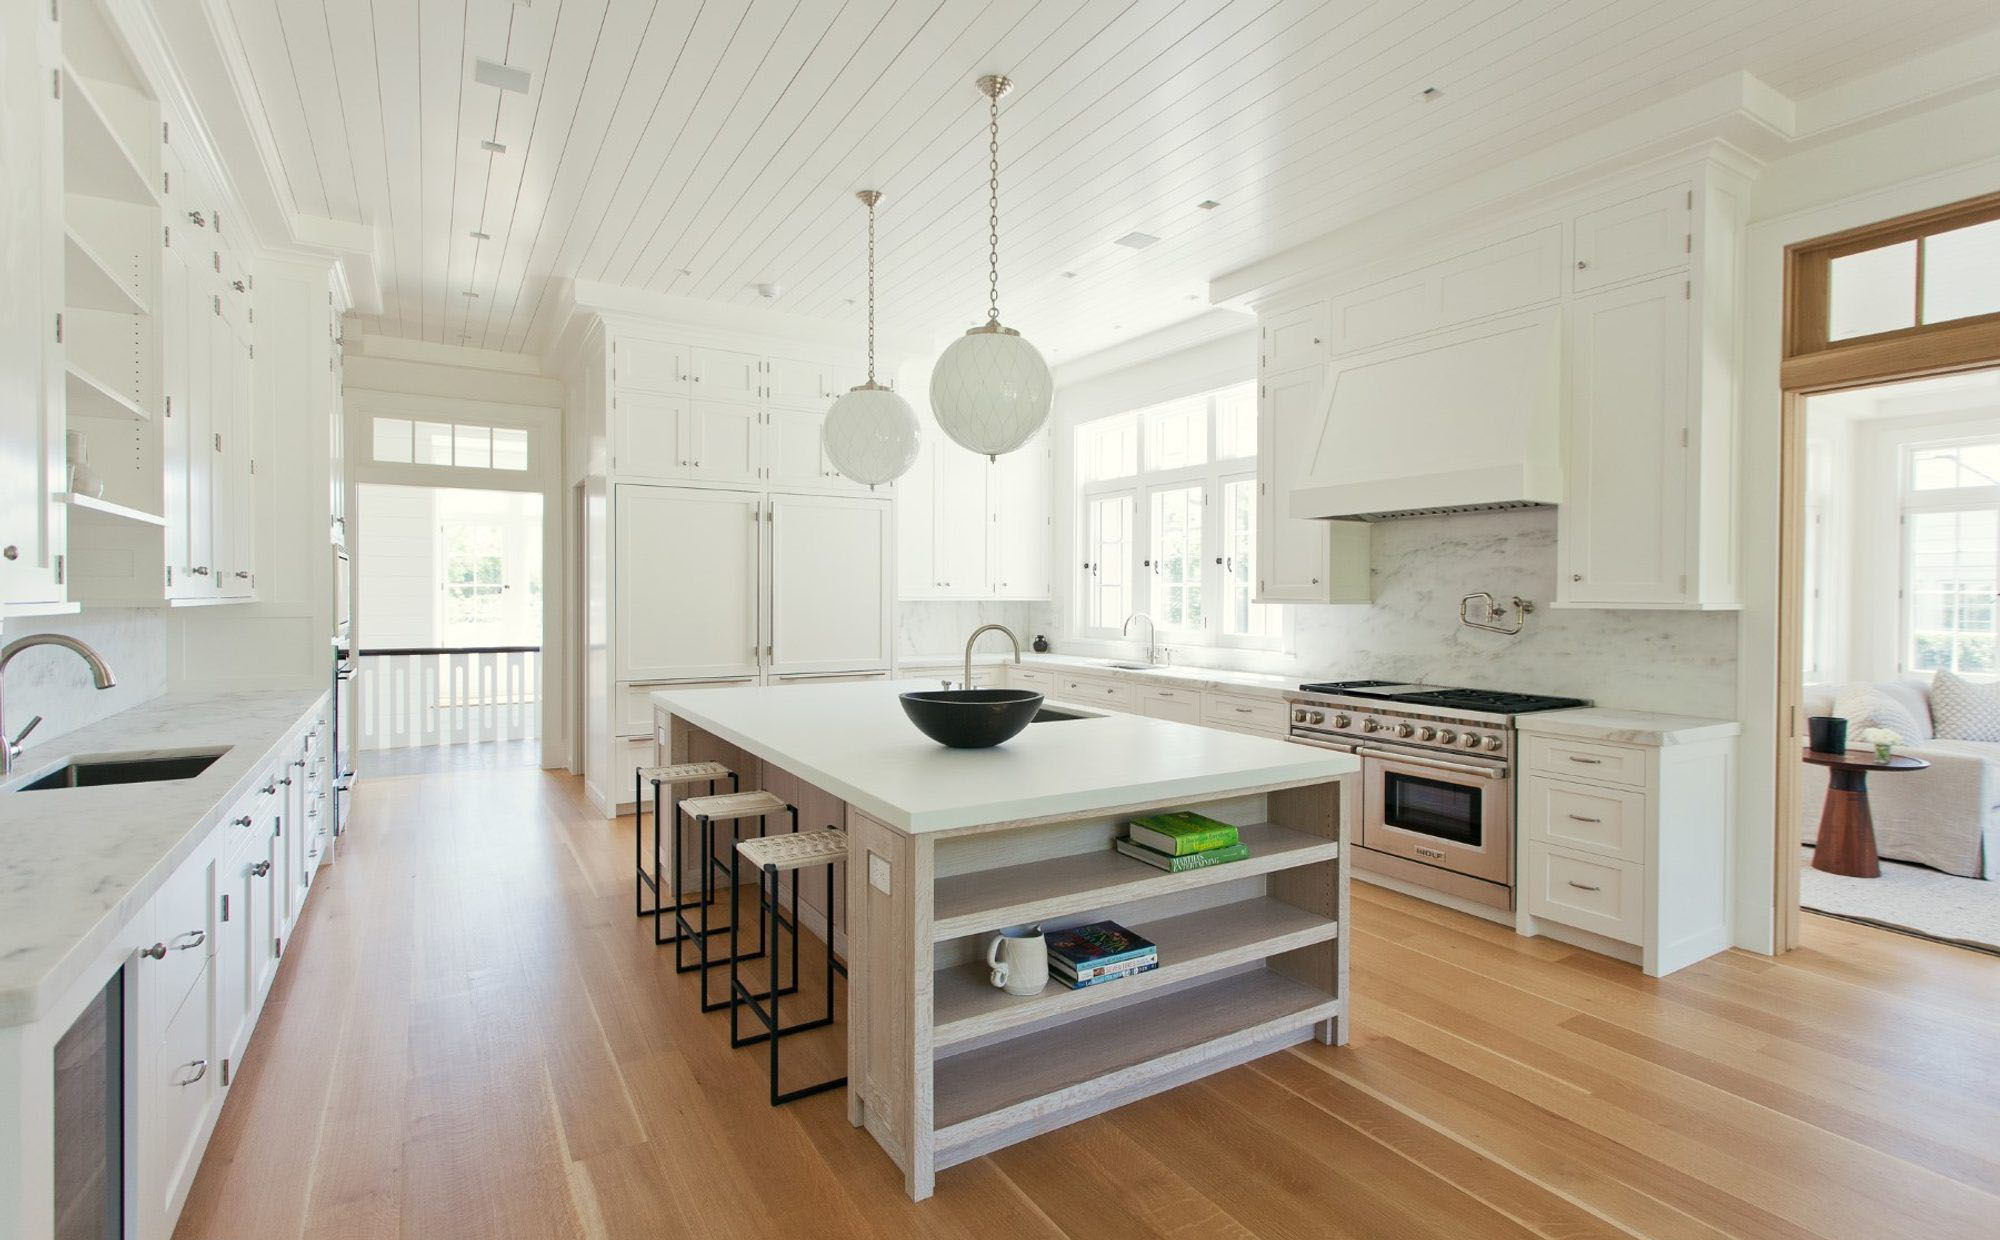 Kitchen with light golden brown hardwood floors and an eggshell finish.